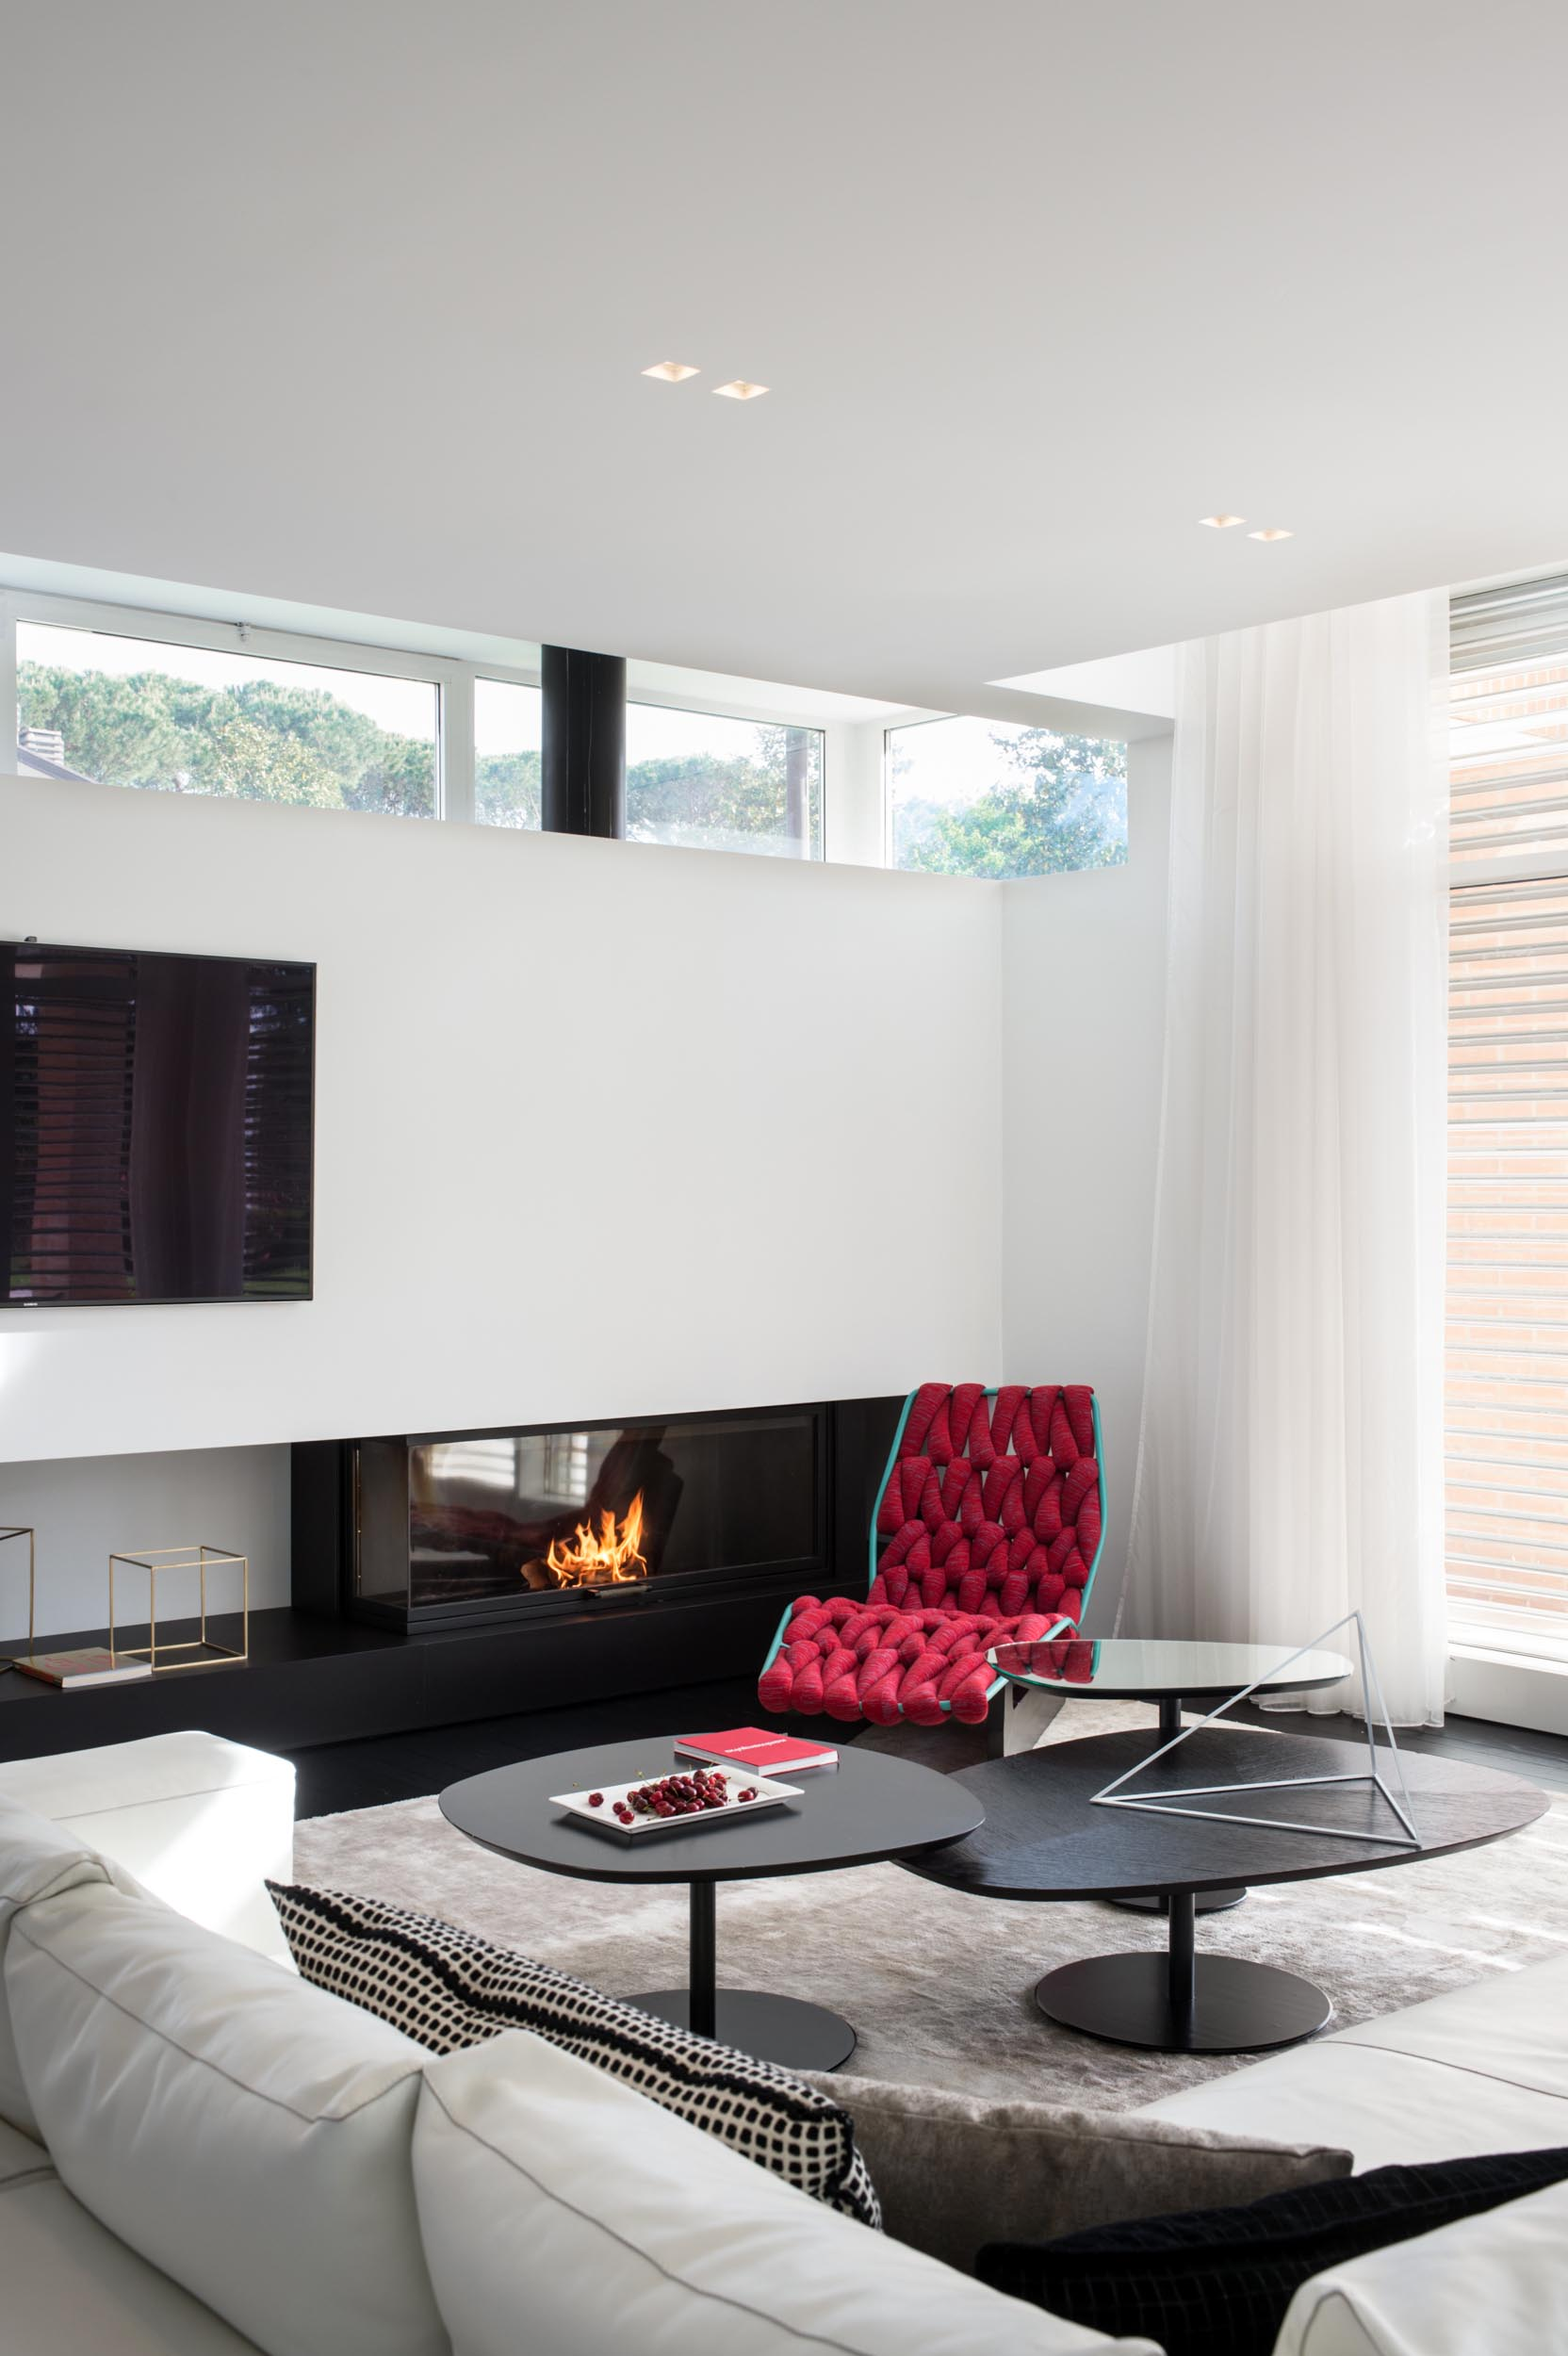 In this modern living room, a white corner sofa sits on top of a large rug, while black coffee tables complement the black fireplace. A woven red chaise has been chosen to add a touch of color.